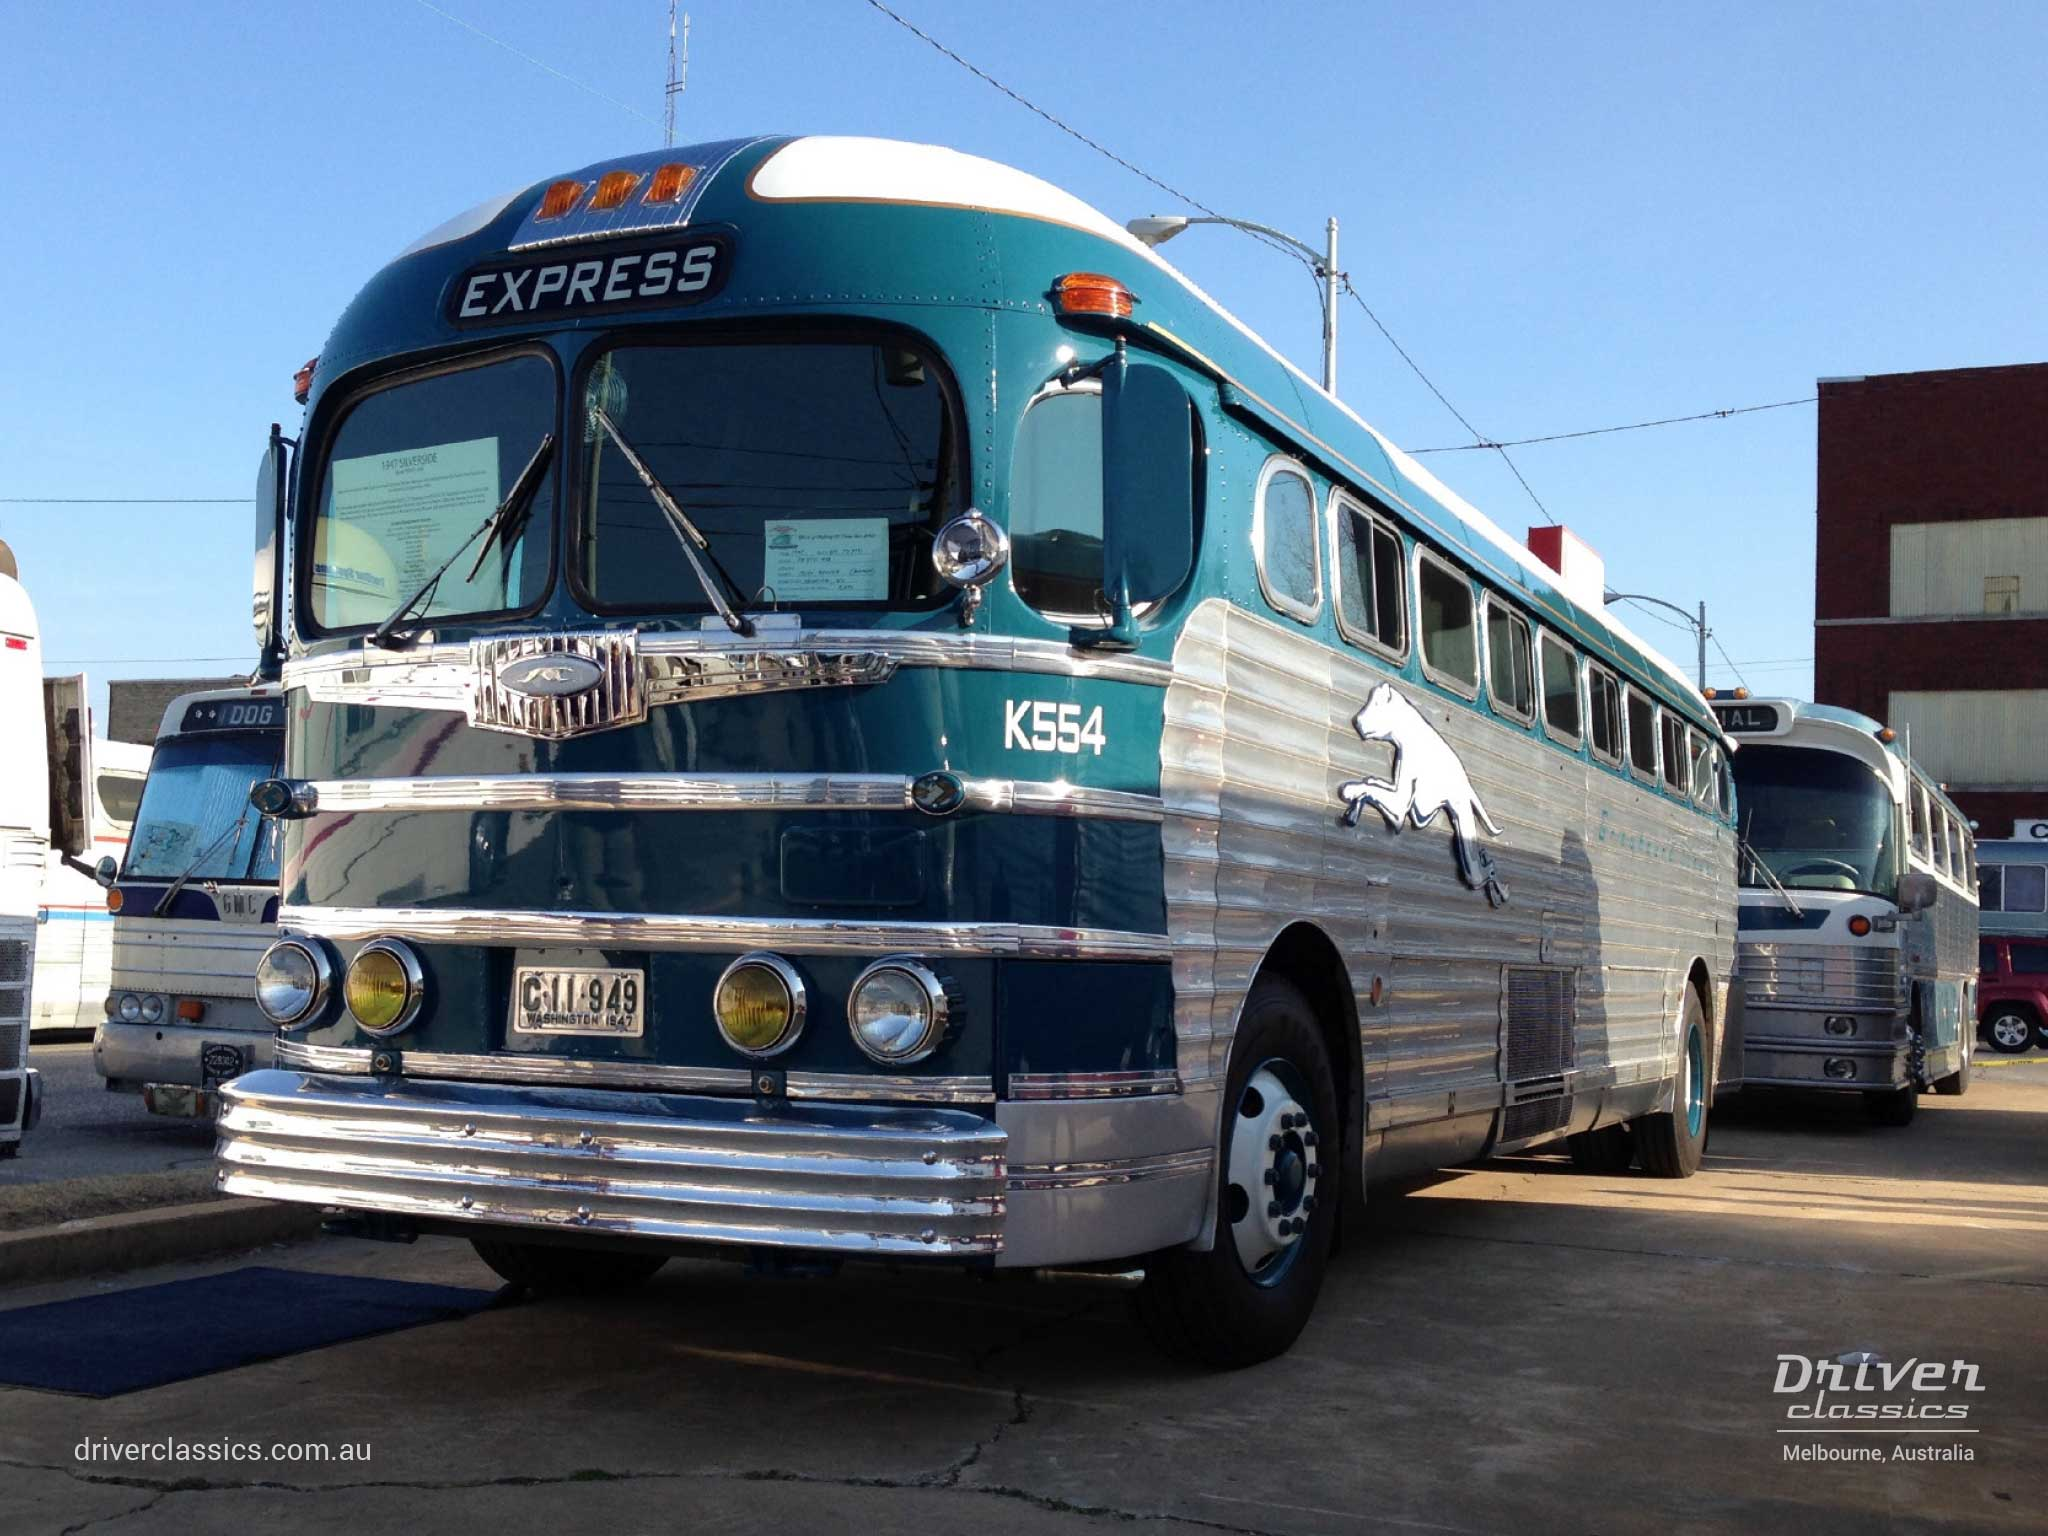 Fully restored 1947 GM PD 3751 Silversides bus front, in the USA